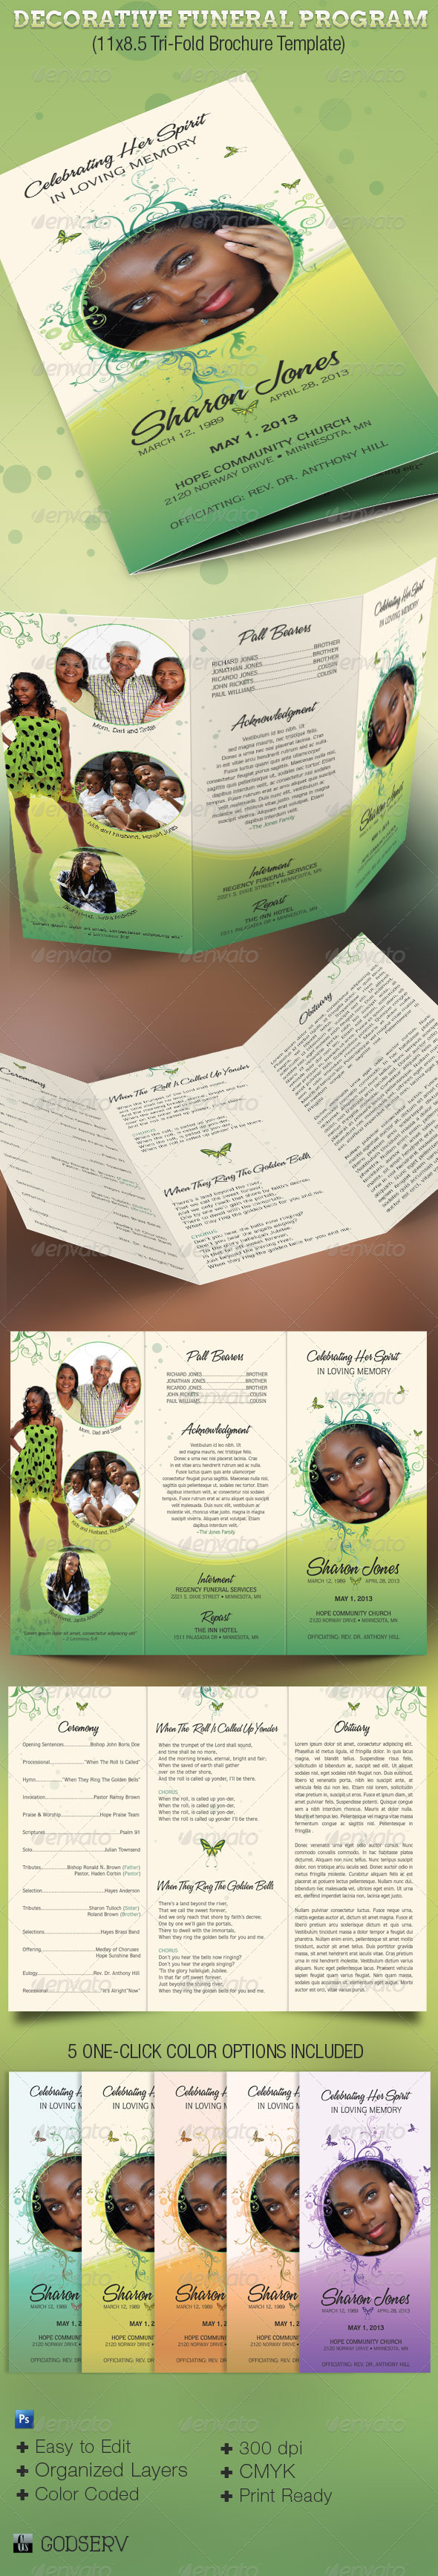 Decorative Tri-Fold Funeral Program - Informational Brochures